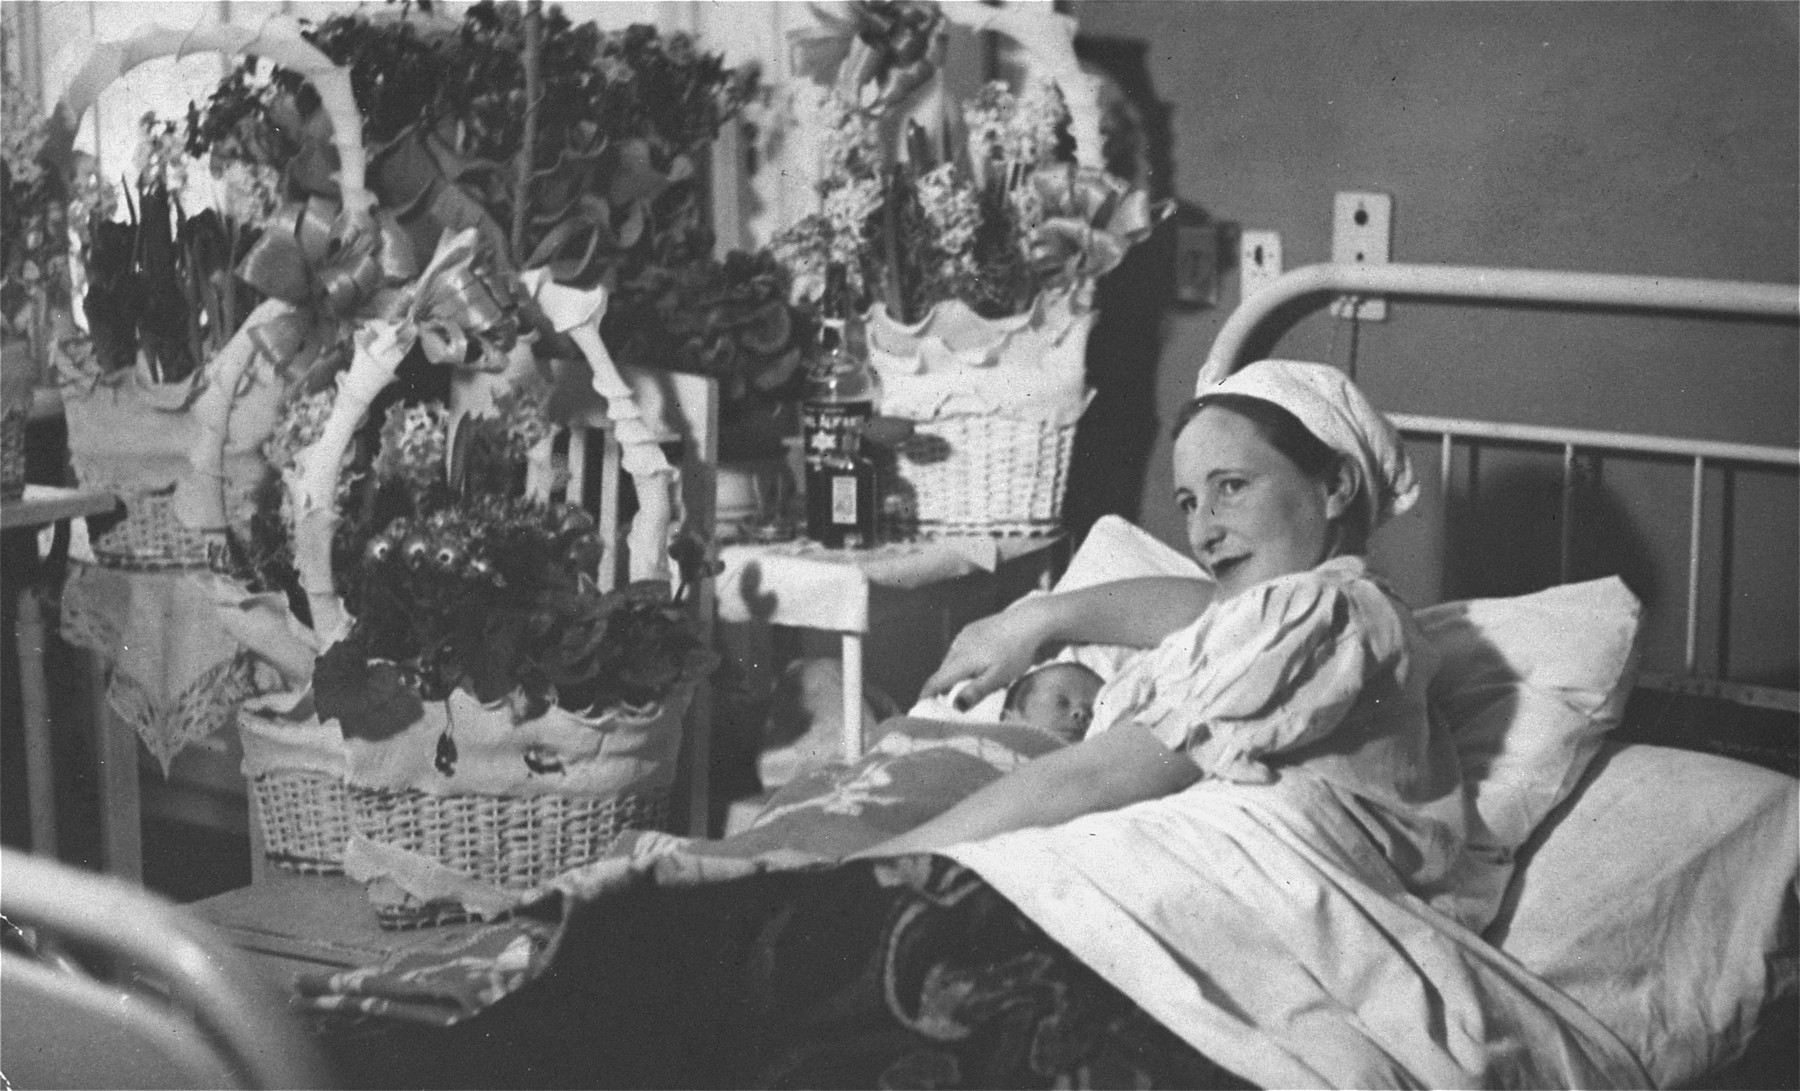 Portrait of Gita Salat Wisgardisky in a hospital in Kovno with her newborn daughter, Henia.